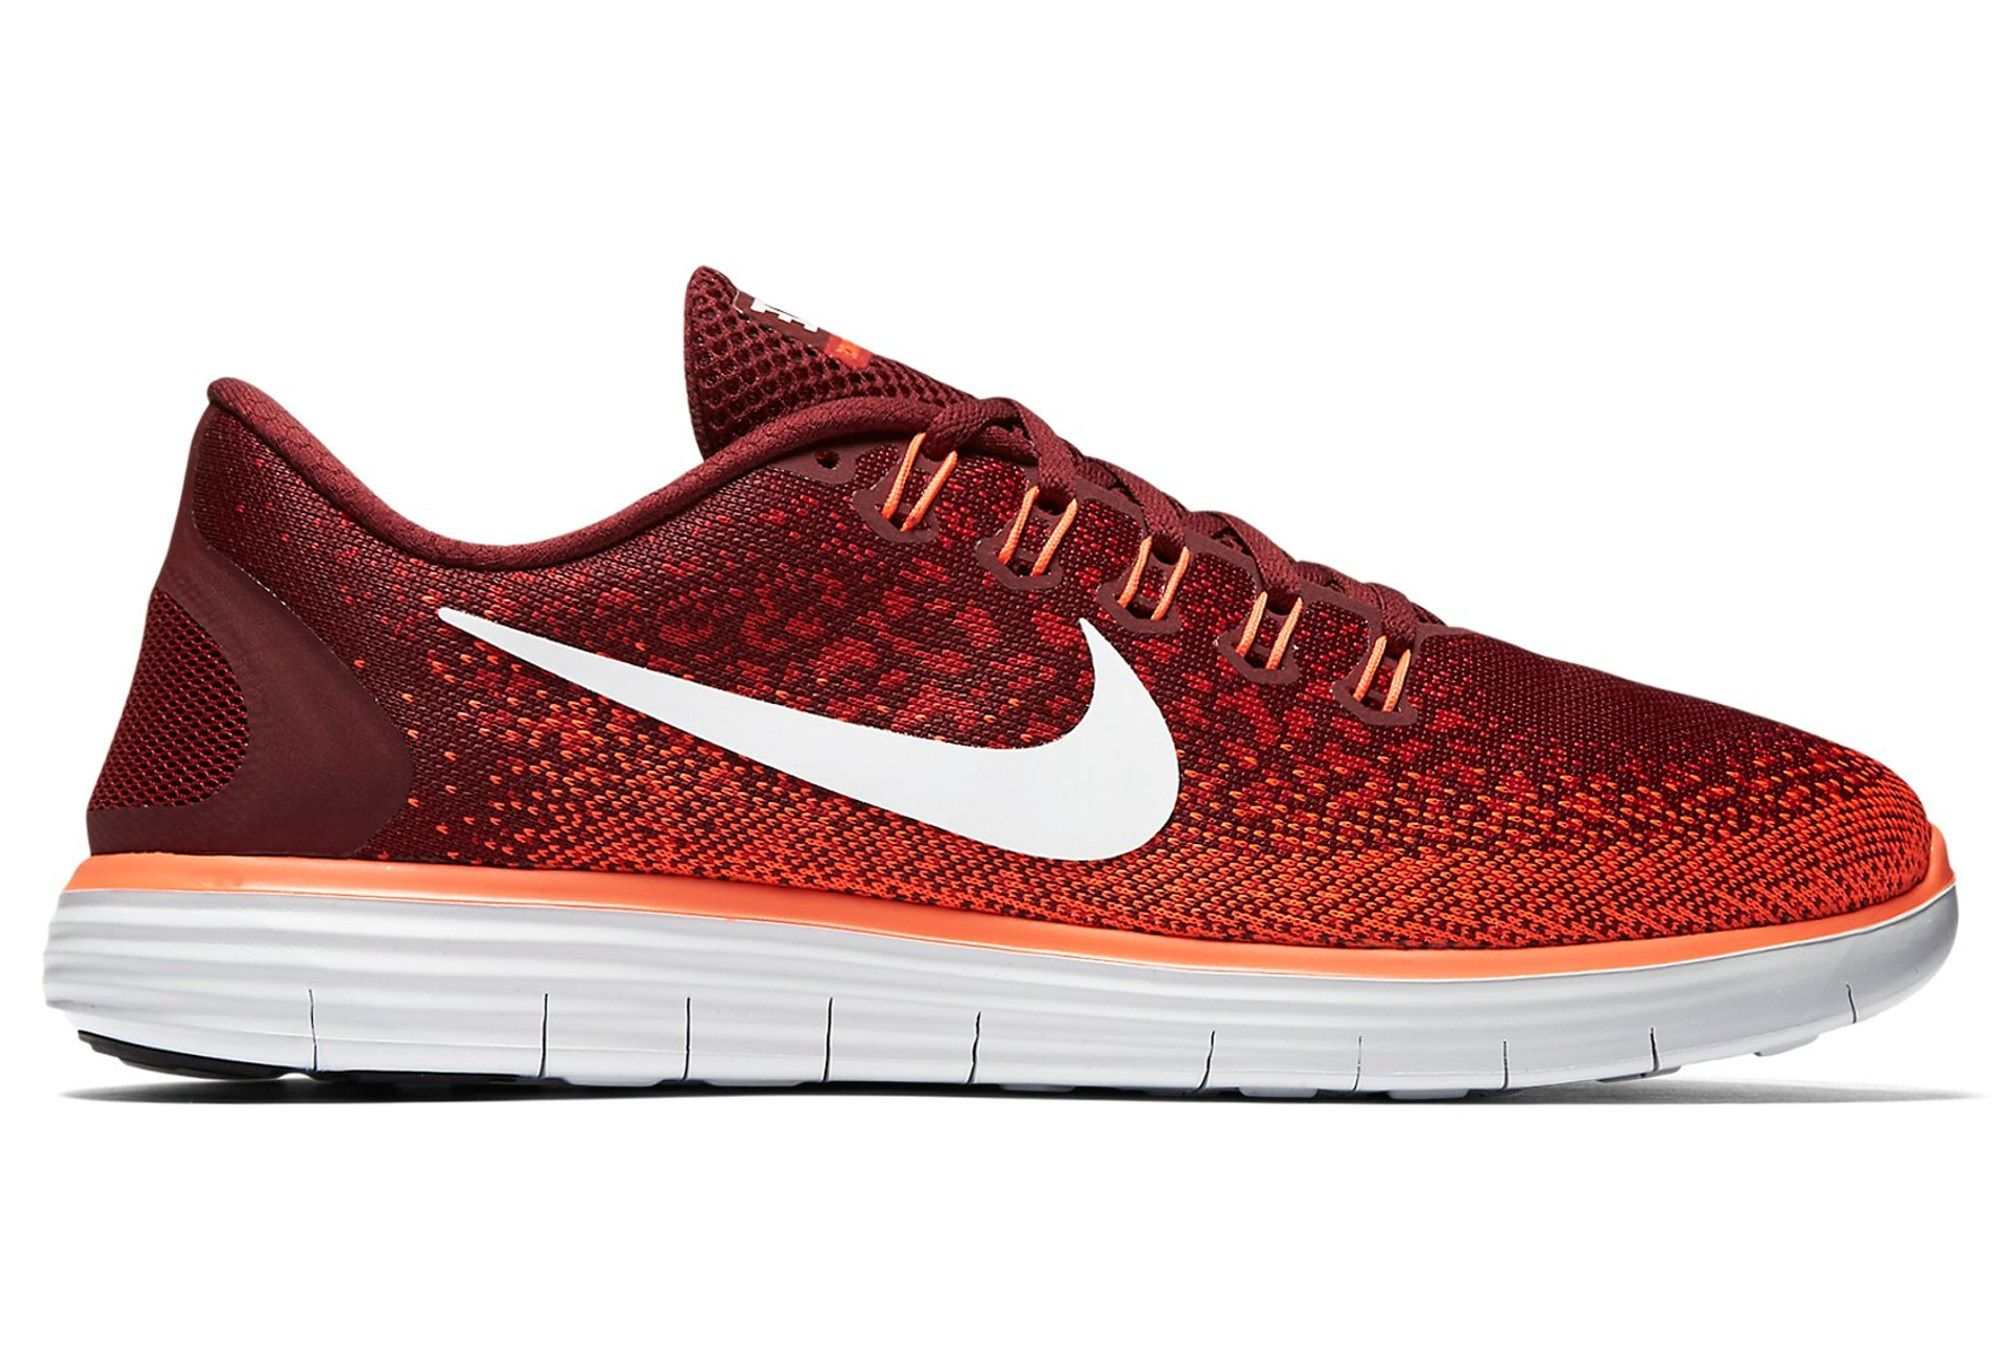 revendeur 2c85d a4aa7 NIKE FREE RUN DISTANCE Rouge Orange Homme | Shoes | Nike ...